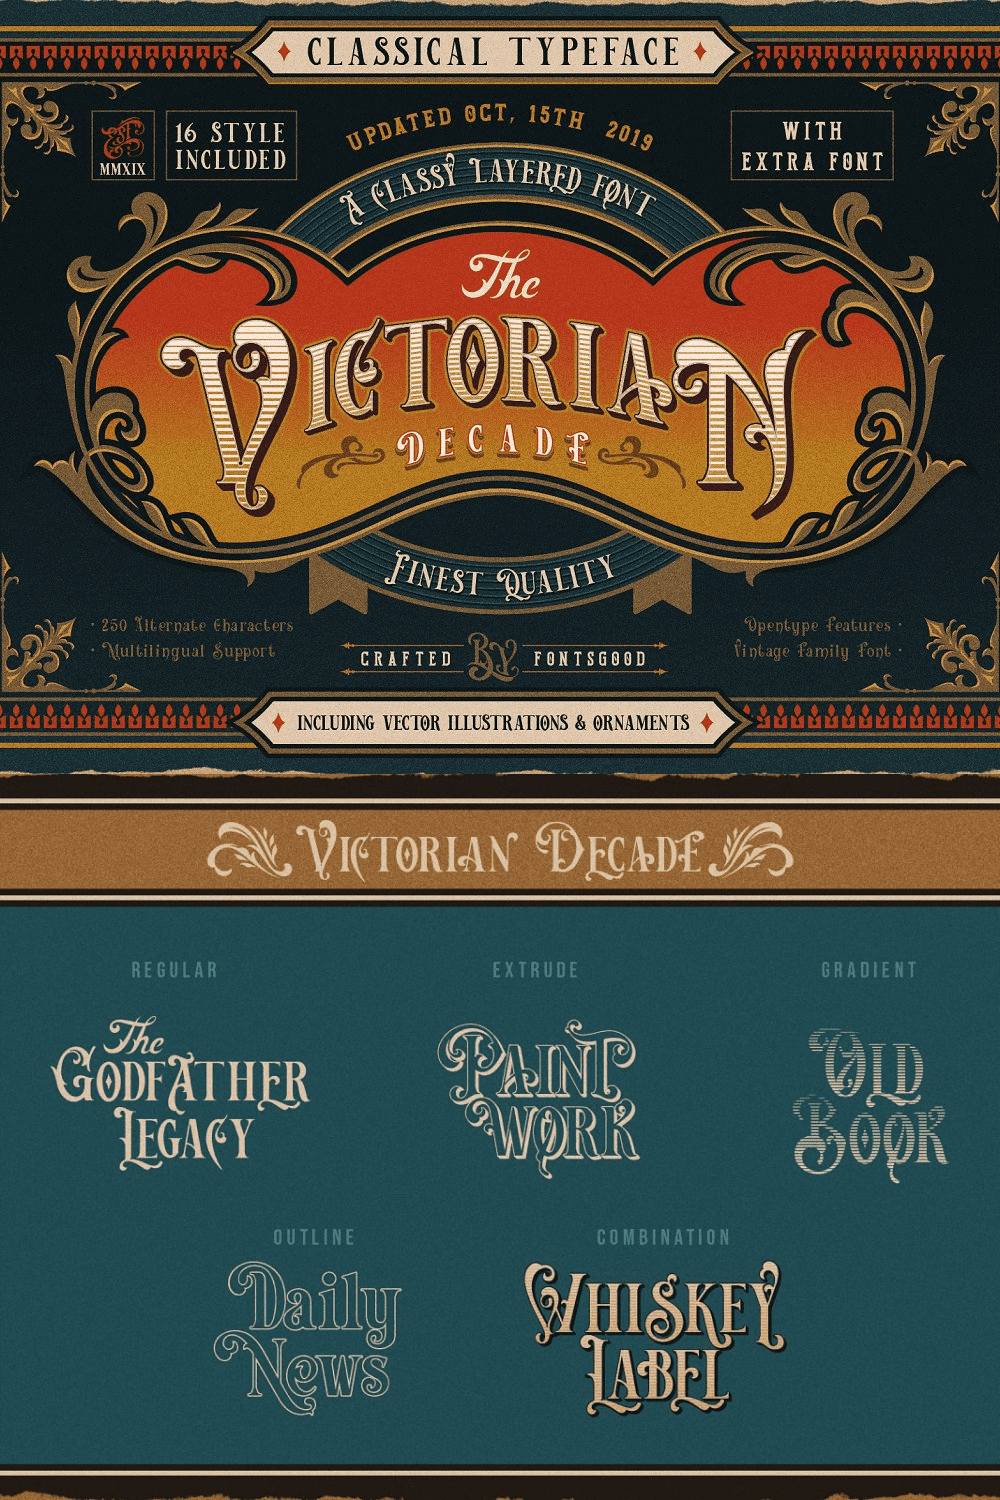 Victorian Decade tyeface is expressive clarity, achieved by careful hand cutting, characterizes this valuable type face in each characters.